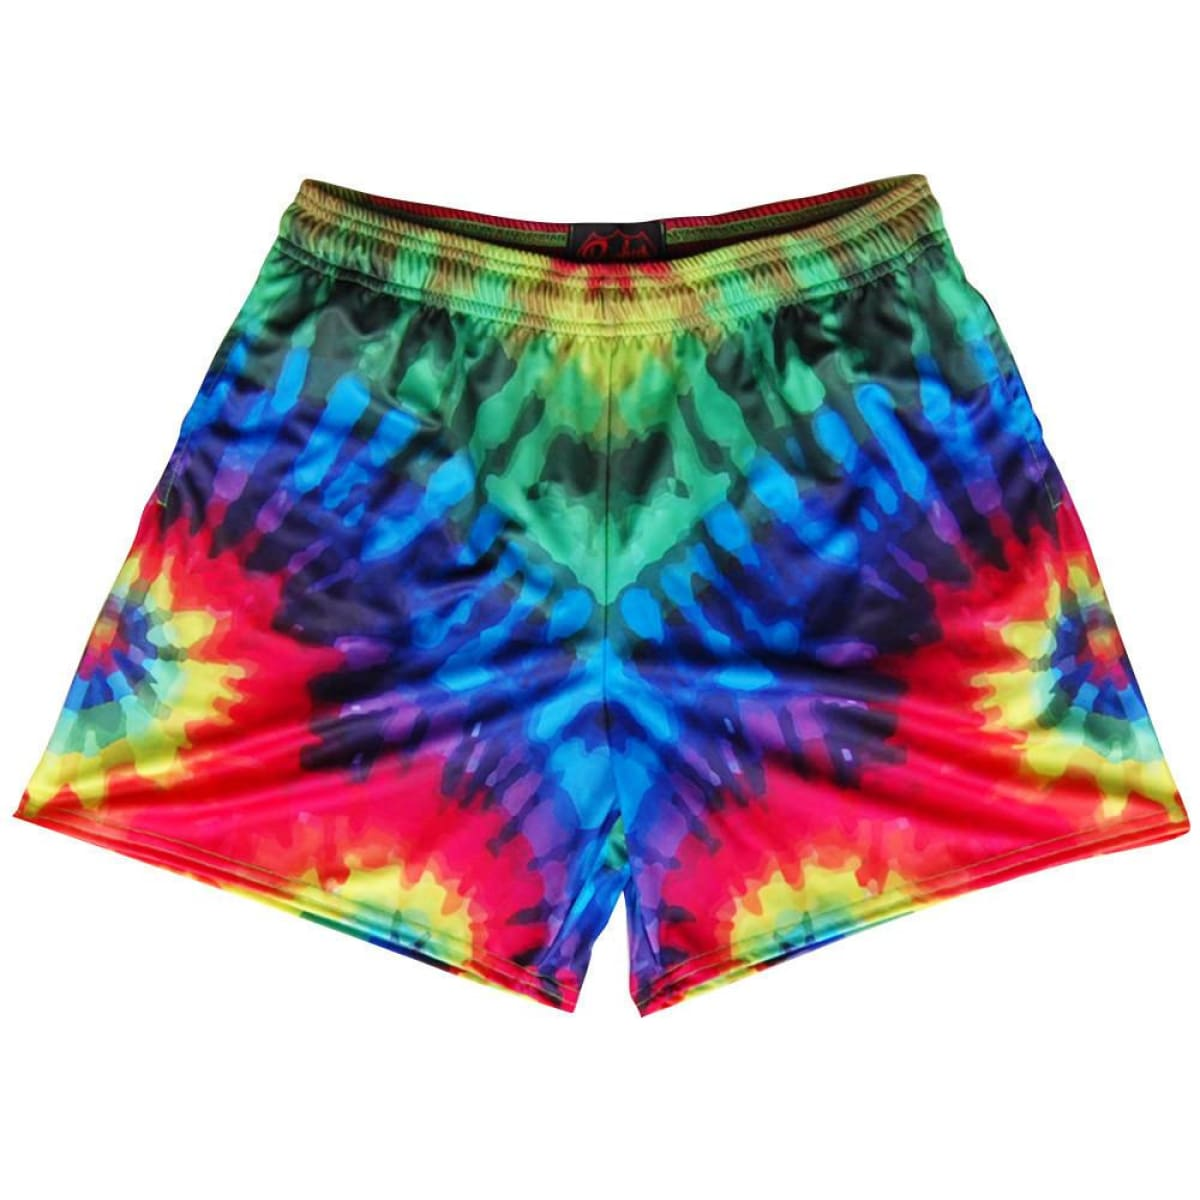 Tie Dye Rugby Shorts - Tie Dye / Adult Small - Rugby Cut Training Shorts